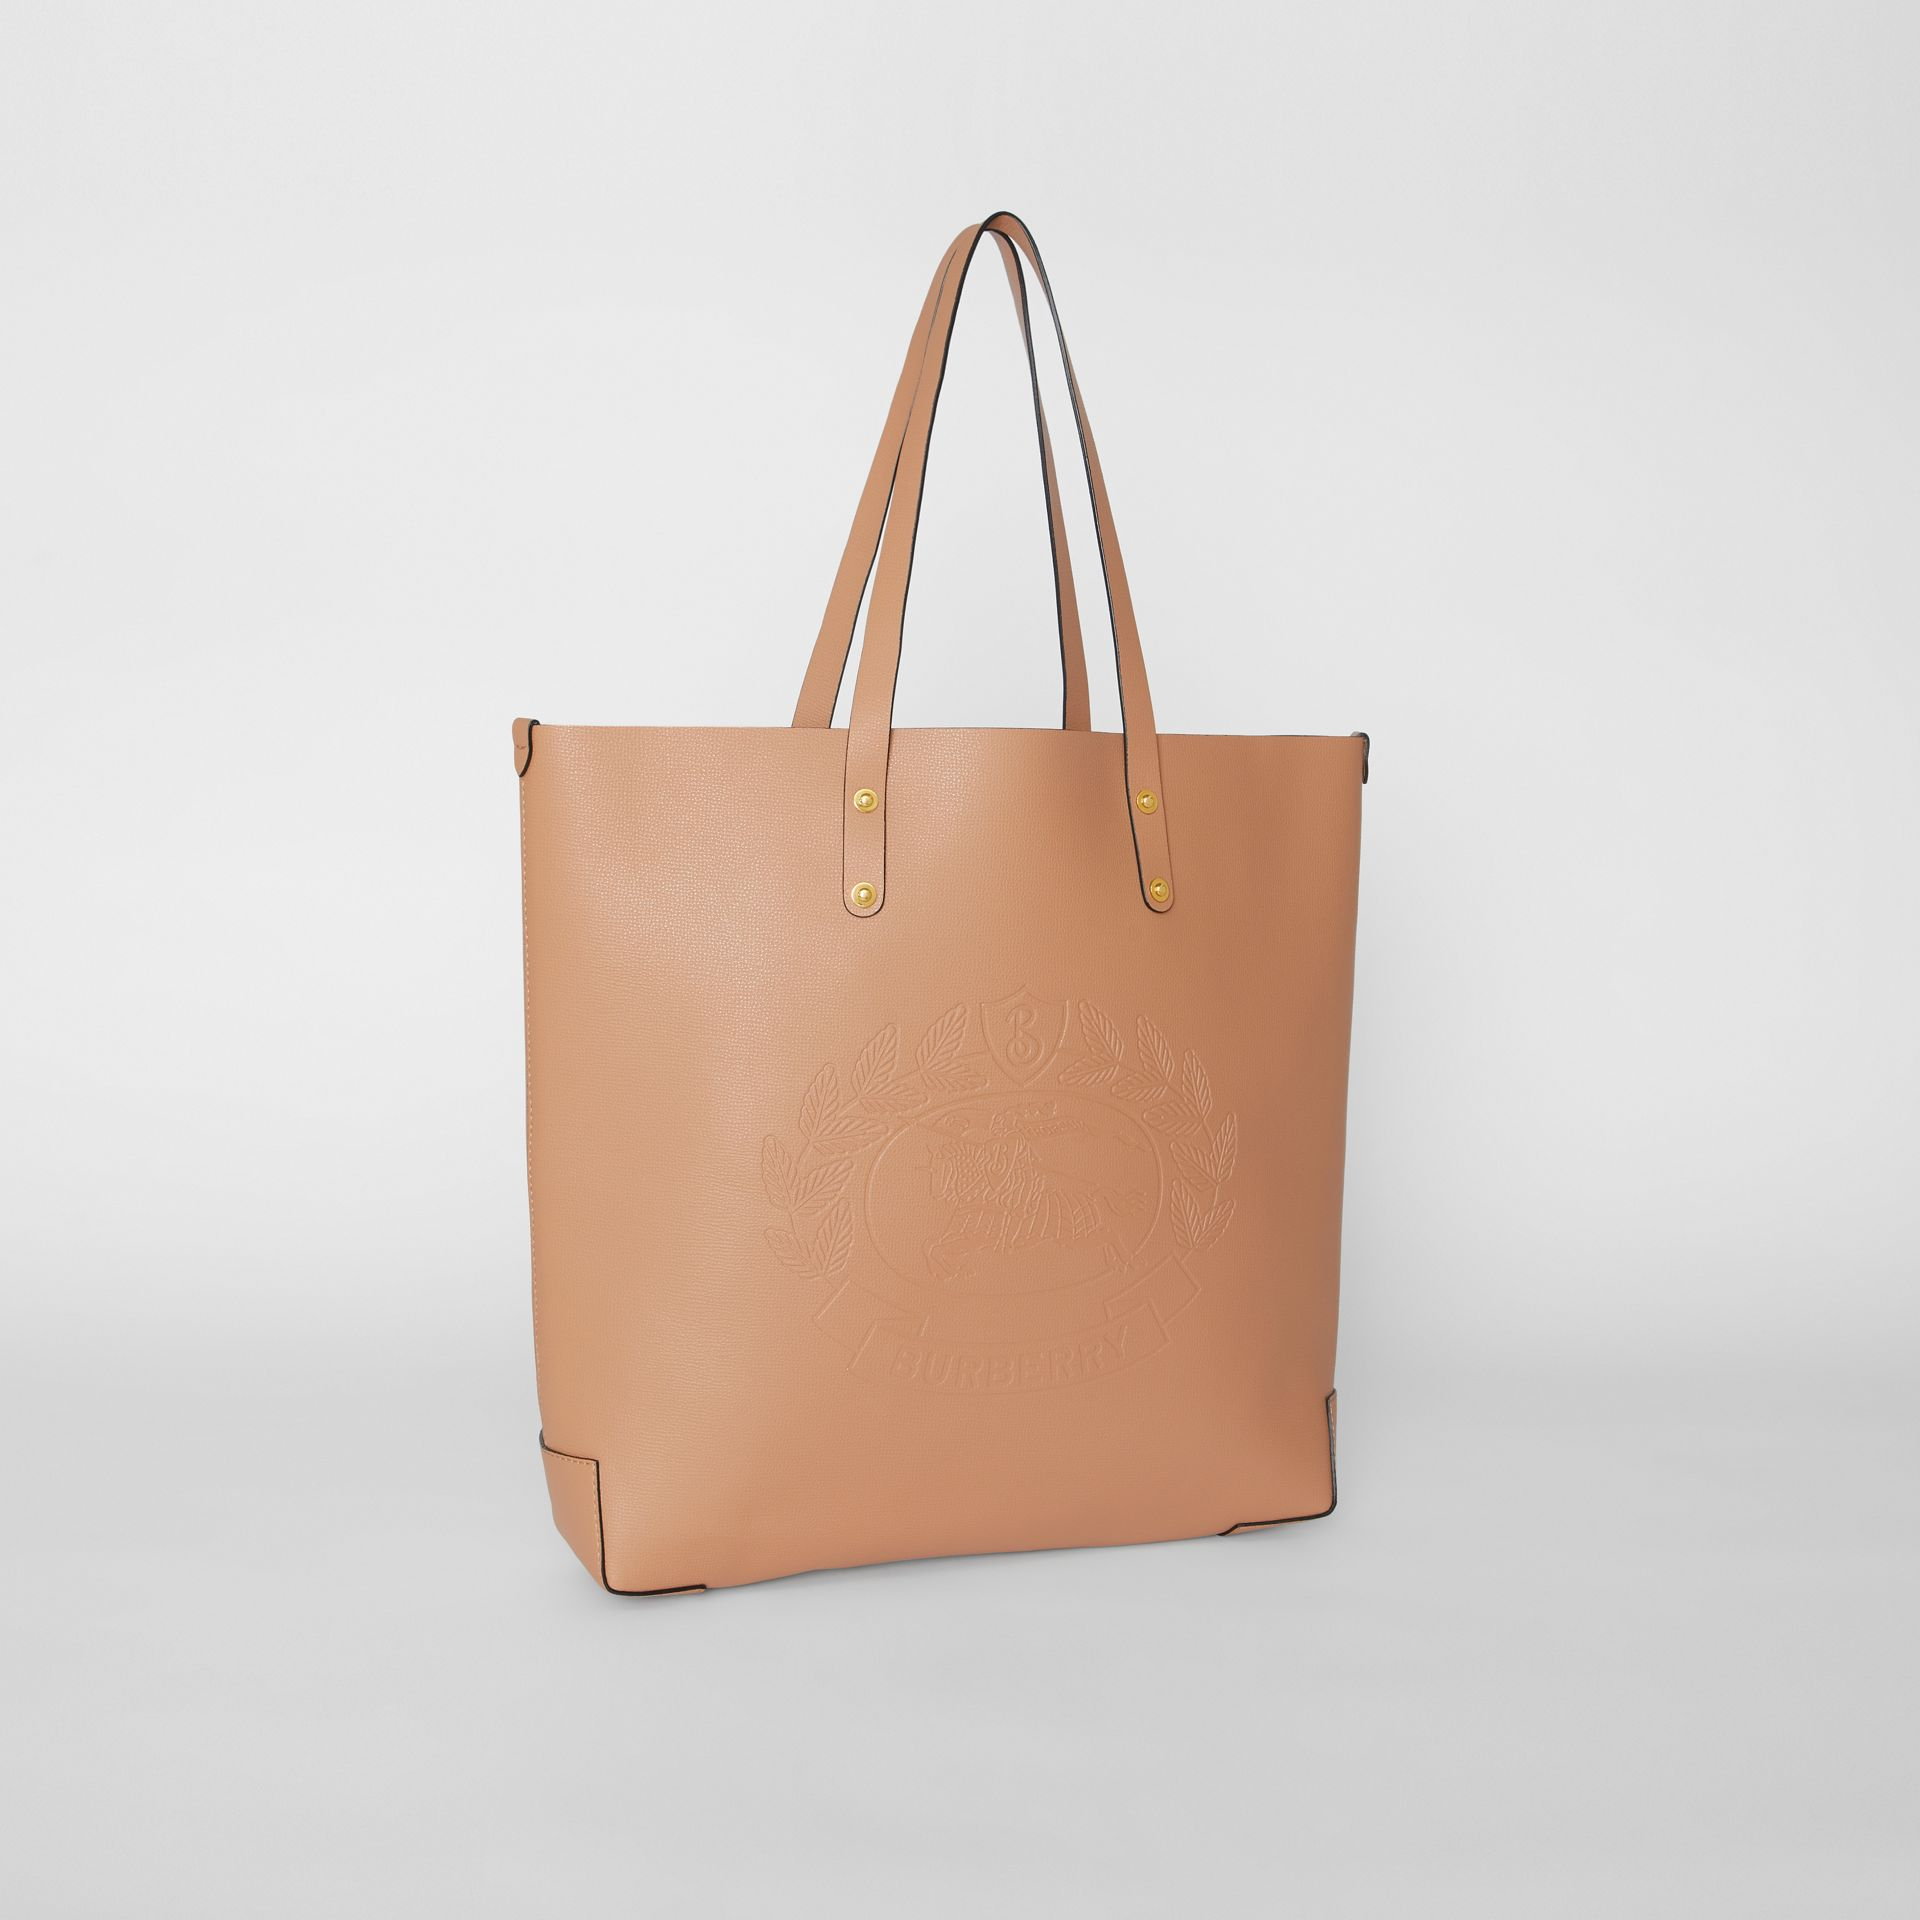 Embossed Crest Leather Tote in Light Camel - Women | Burberry - gallery image 6